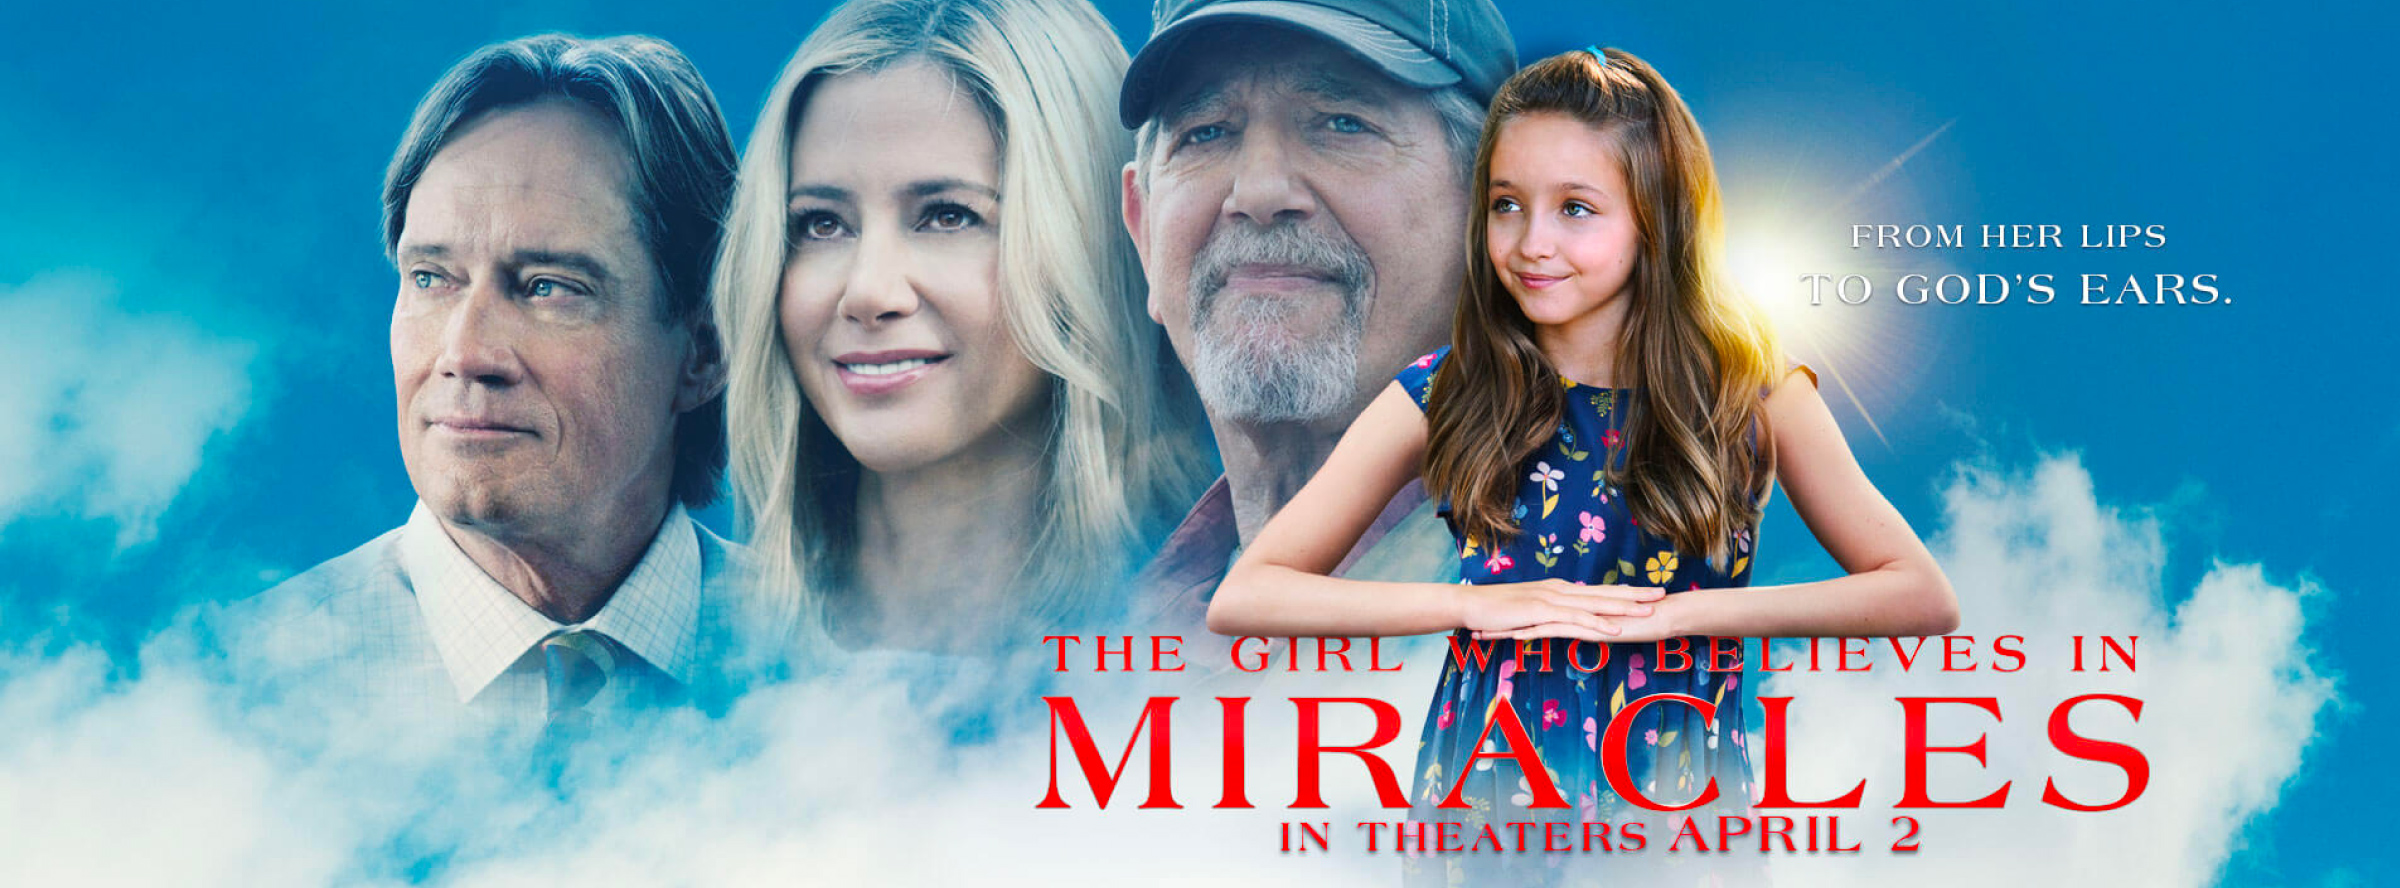 Slider Image for The Girl Who Believes In Miracles